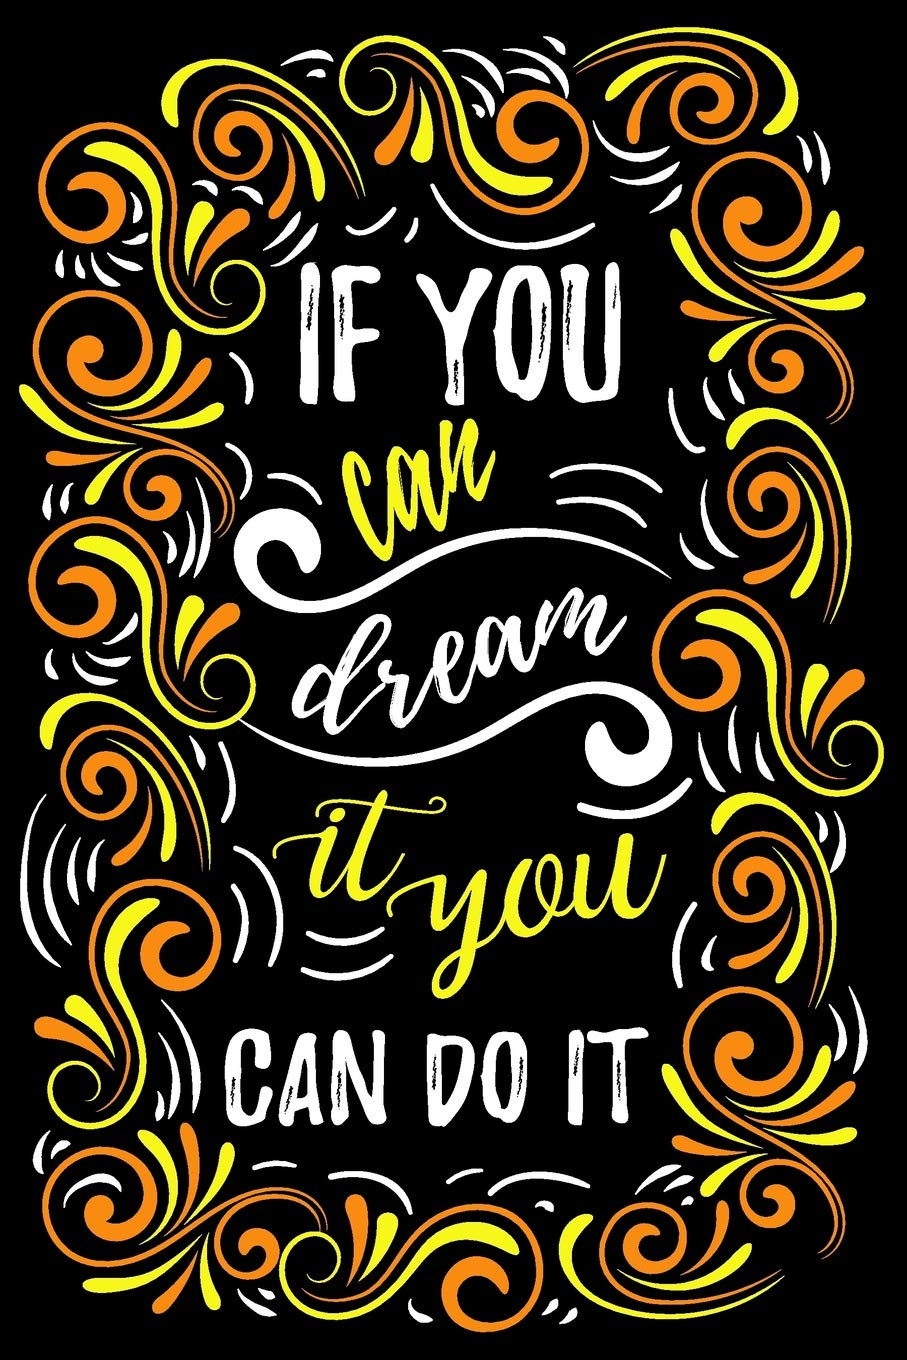 Download If You Can Dream It You Can Do It: The Best Inspirational Notebook Gift for Women, Blank, Lined, 6 x 9 inch; 15.24 x 22.86 cm, with A Motivational Quote To Inspire Success & Happiness, College Ruled PDF